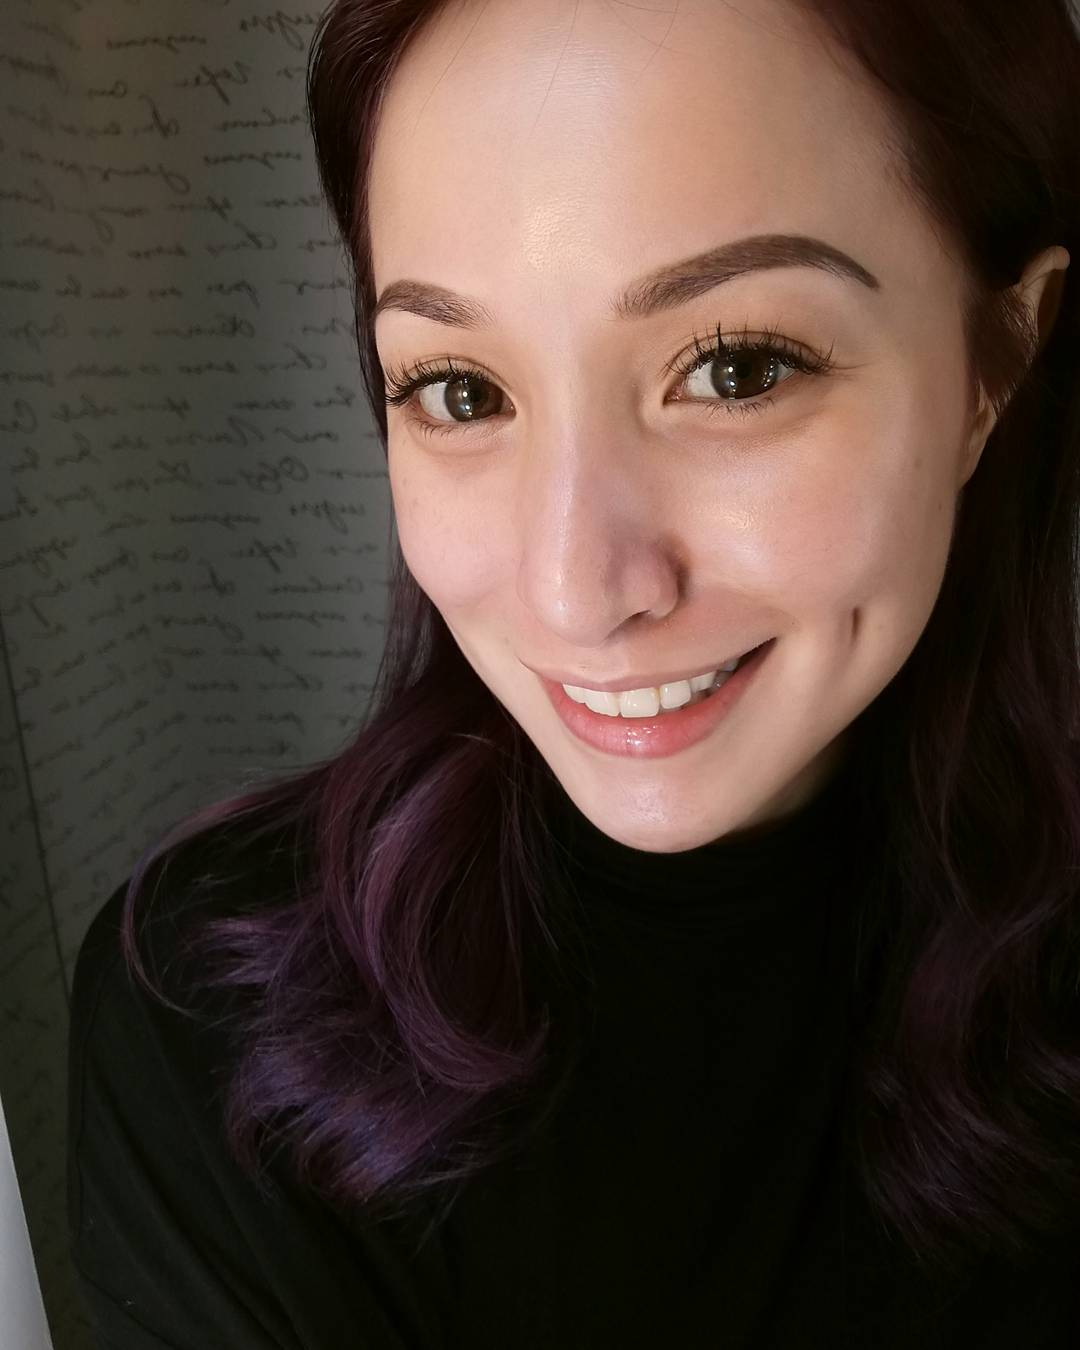 29 photos of Cristine Reyes that show her transformation from a hot woman to badass mom